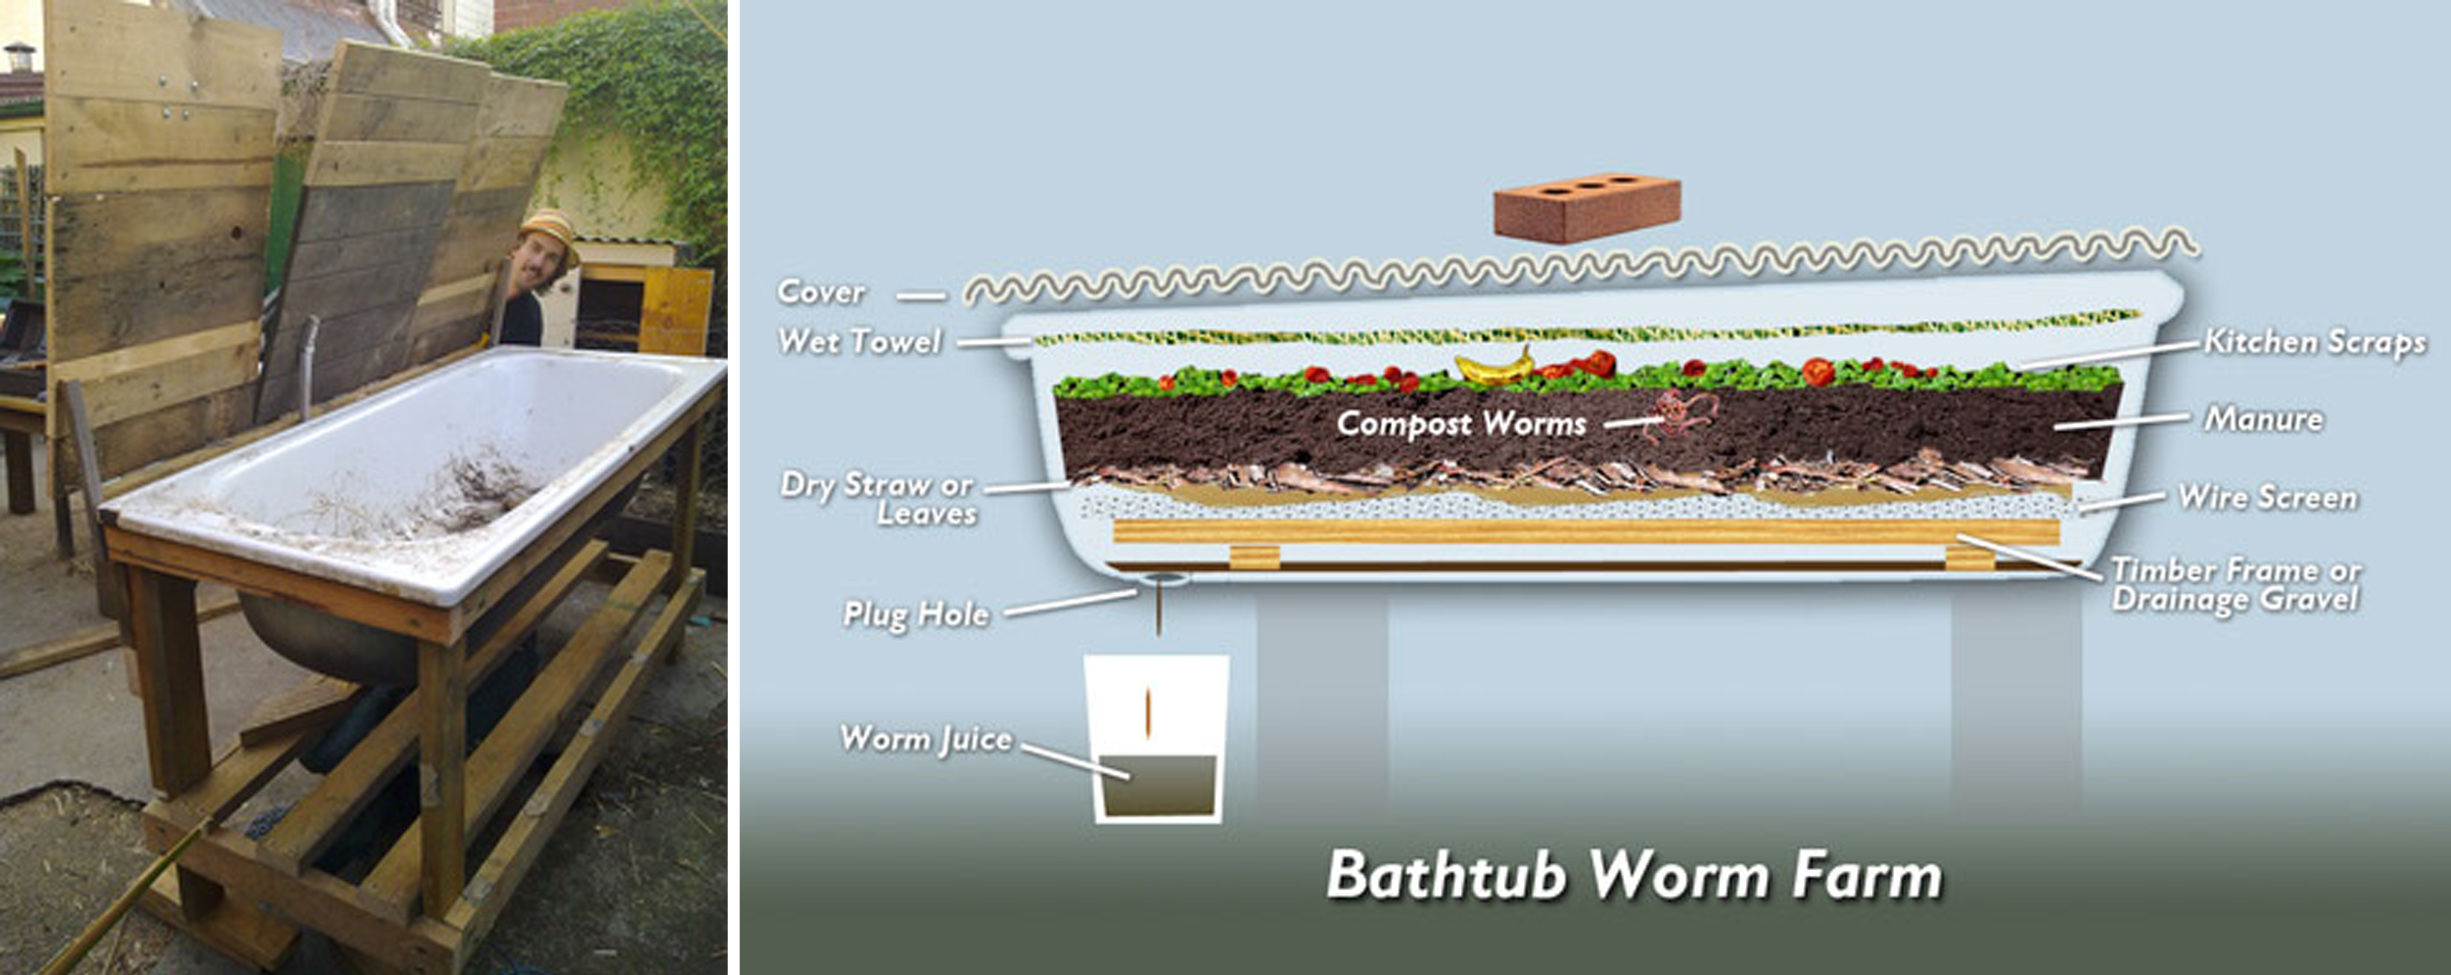 bath-worm-farm.jpg